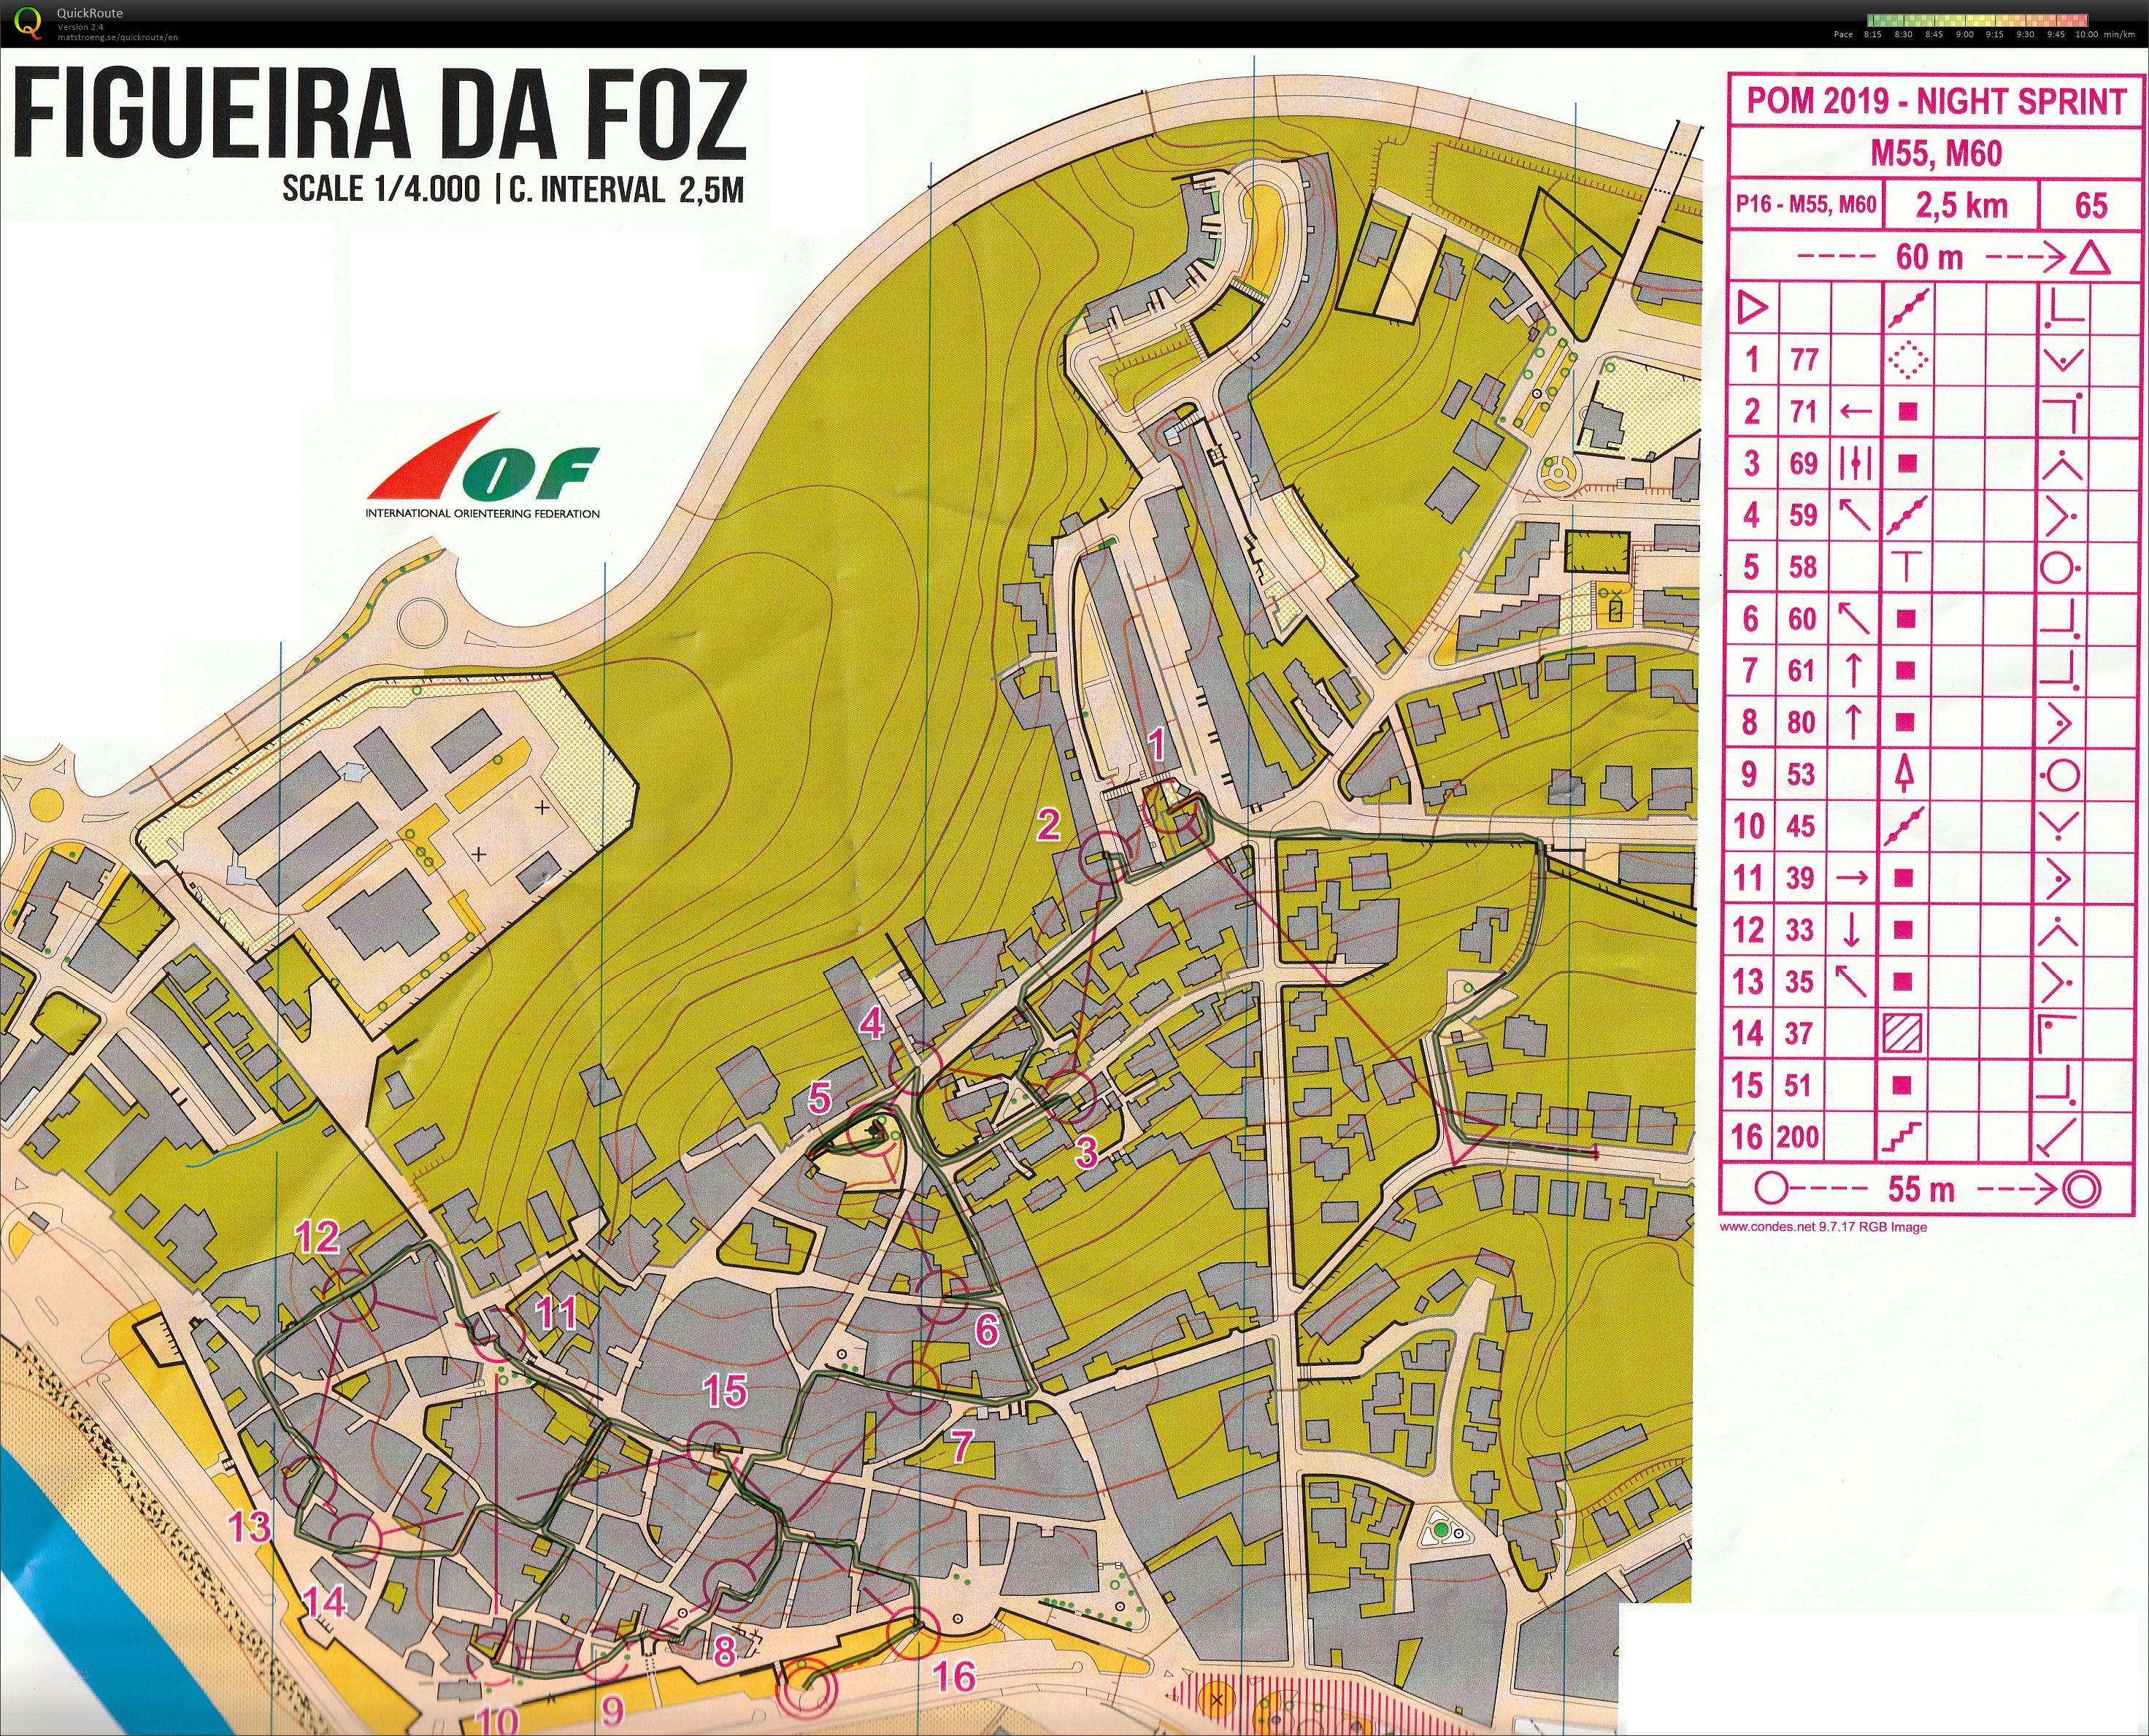 Portugal O-meeting Buarcos natsprint H60 (02-03-2019)